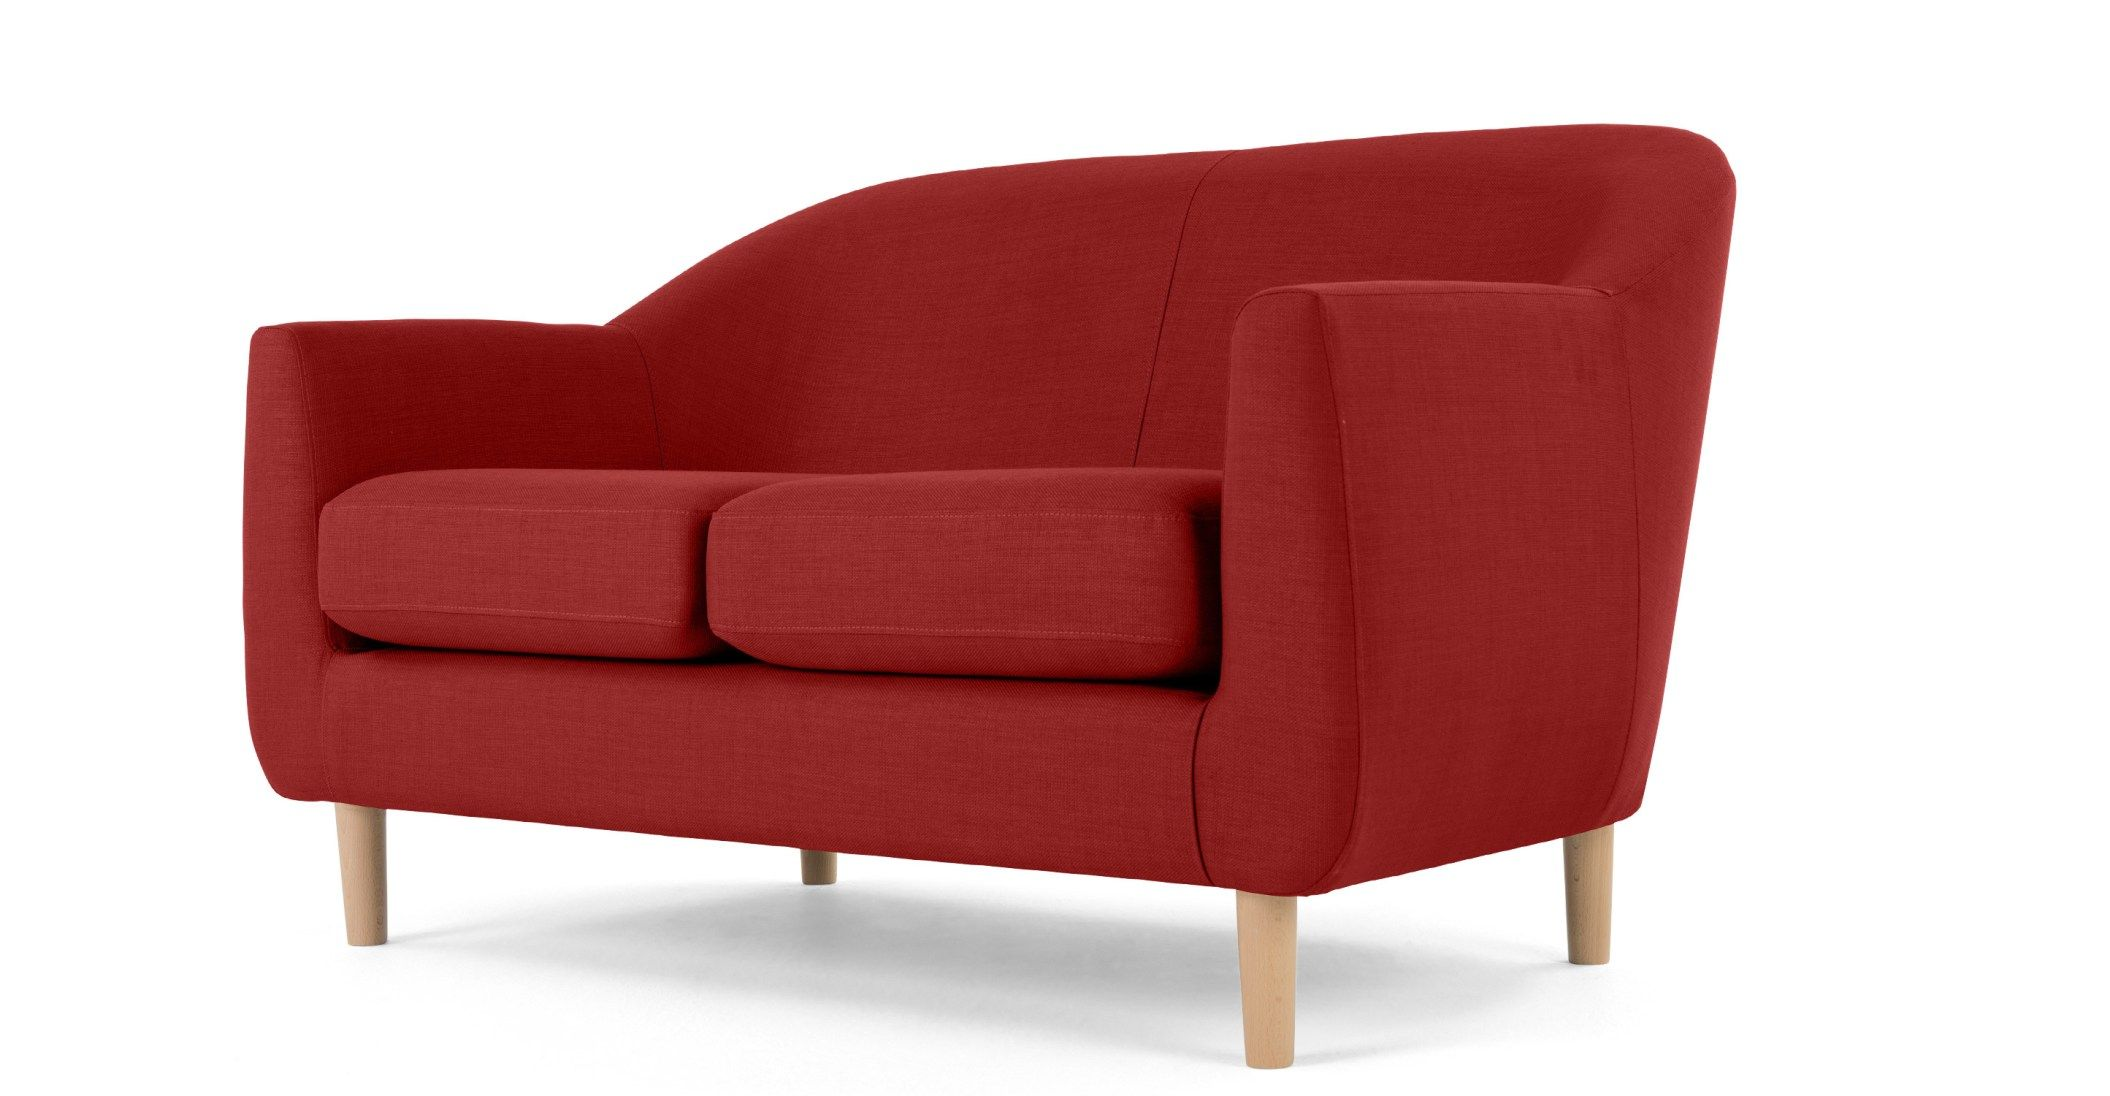 Tubby 2 Seater Sofa Postbox Red In 2020 2 Seater Sofa Seater Sofa Red Sofa